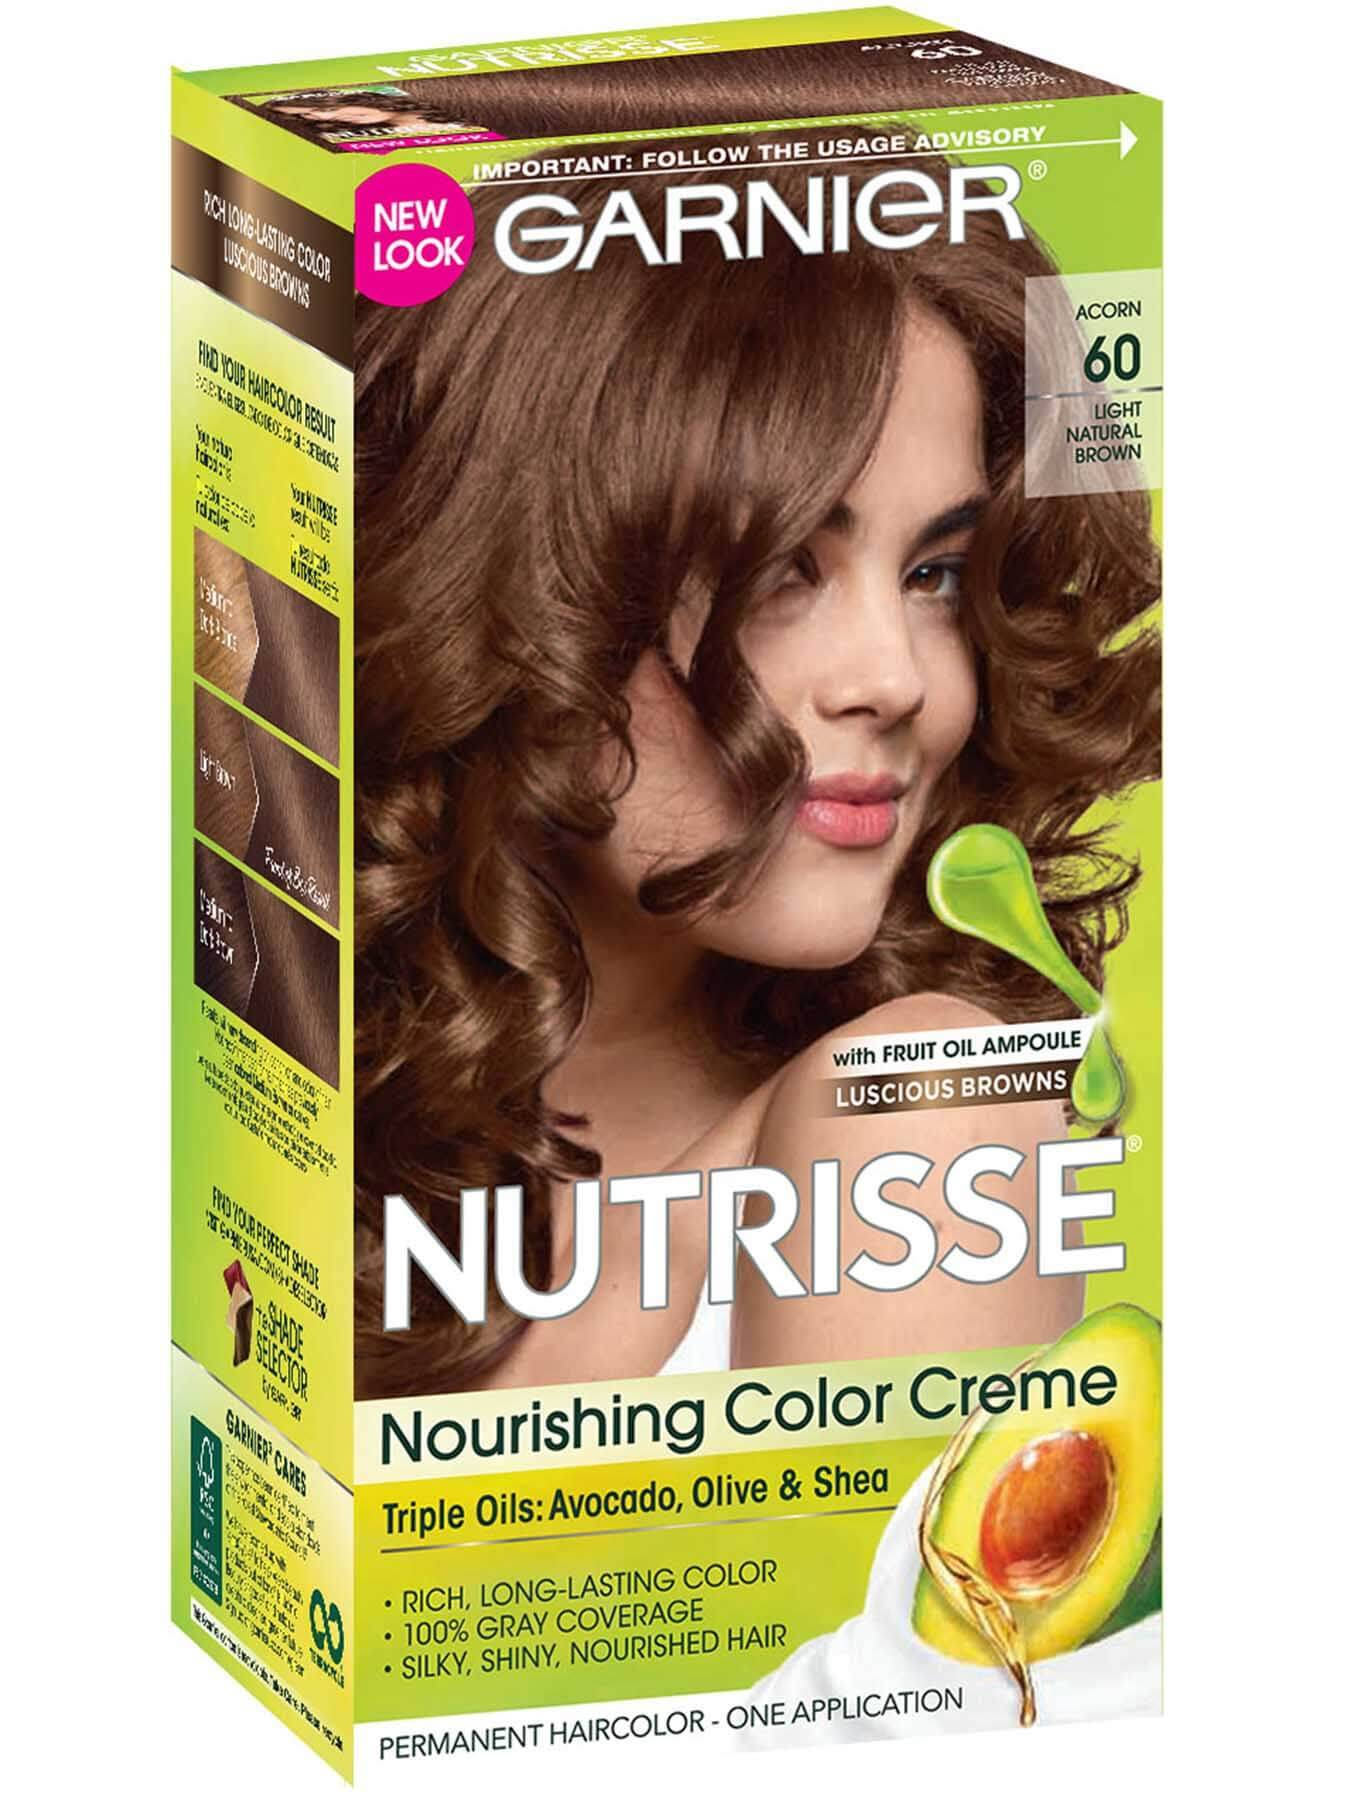 Garnier Nutrisse Nourishing Color Creme 60 - Light Natural Brown (Acorn) Permanent Hair Color